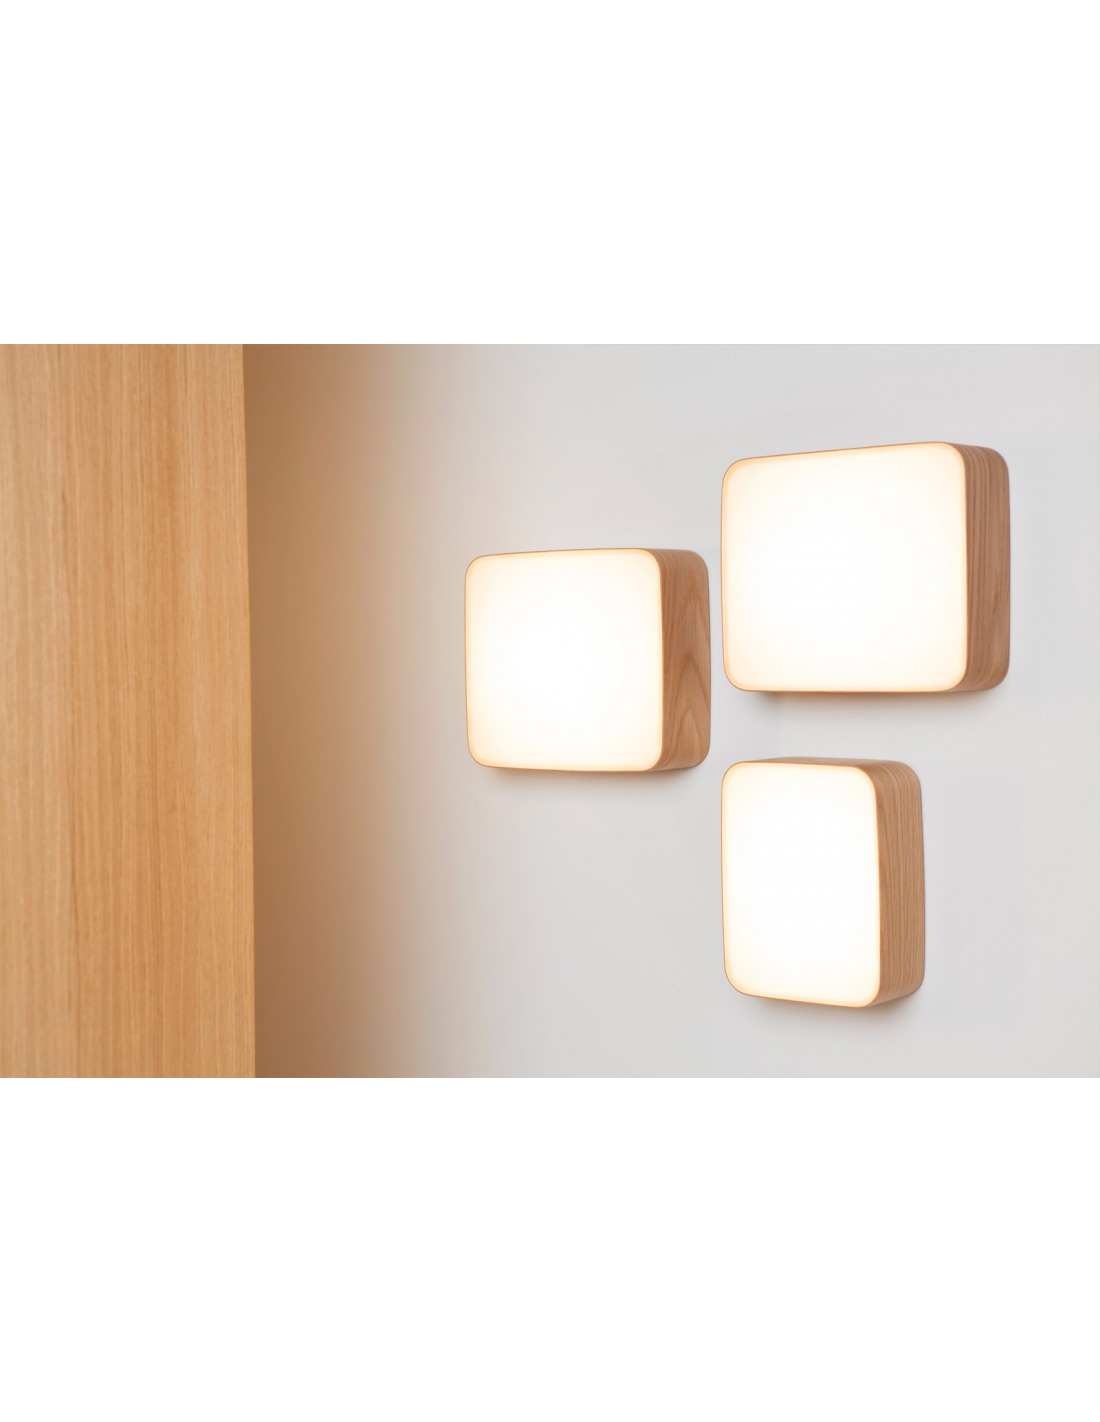 applique murale en bois led cube au design scandinave et